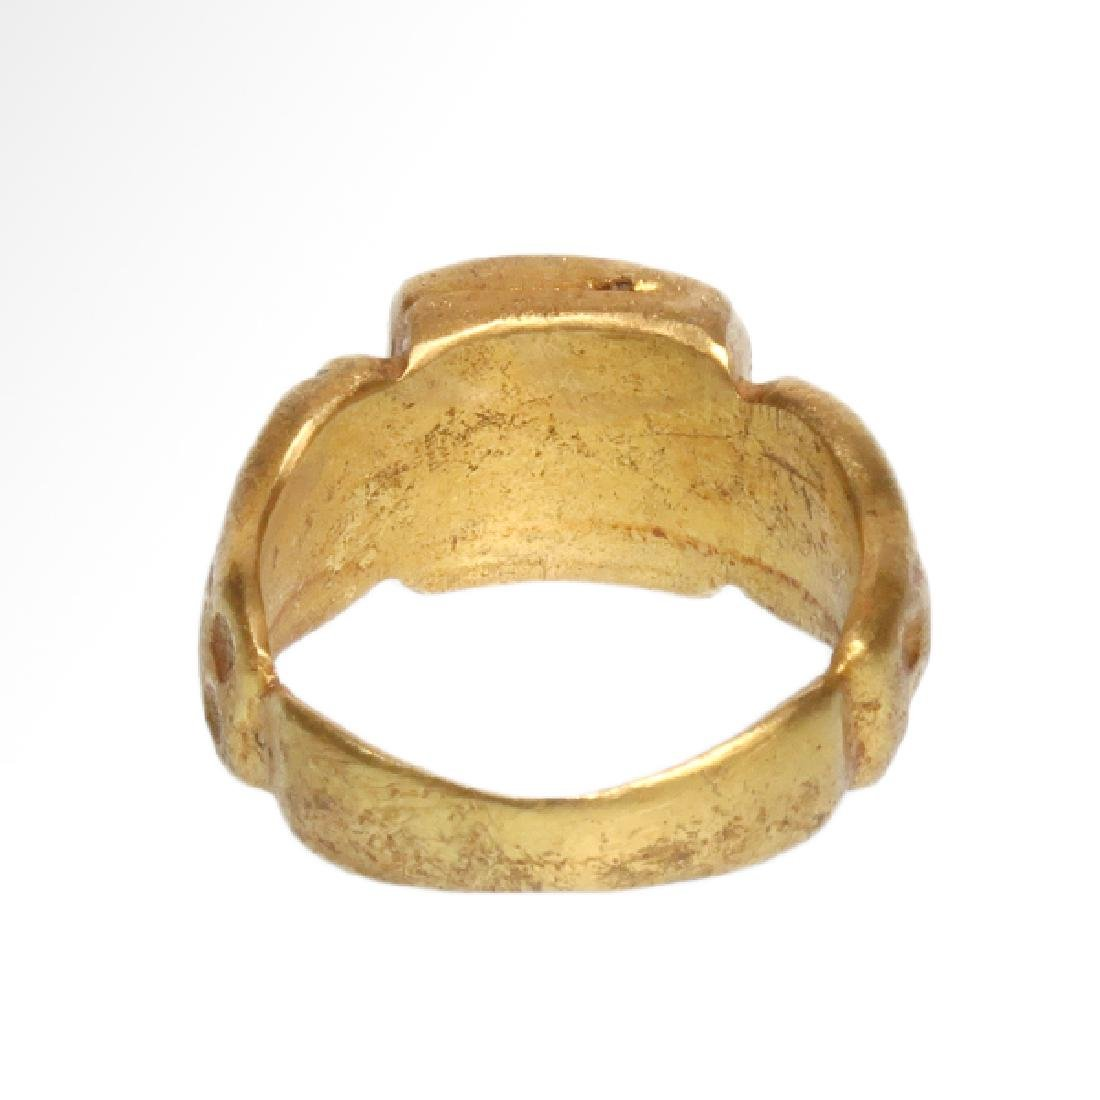 Roman Gold Ring with Banded Agate Ring-stone, 2nd - 5